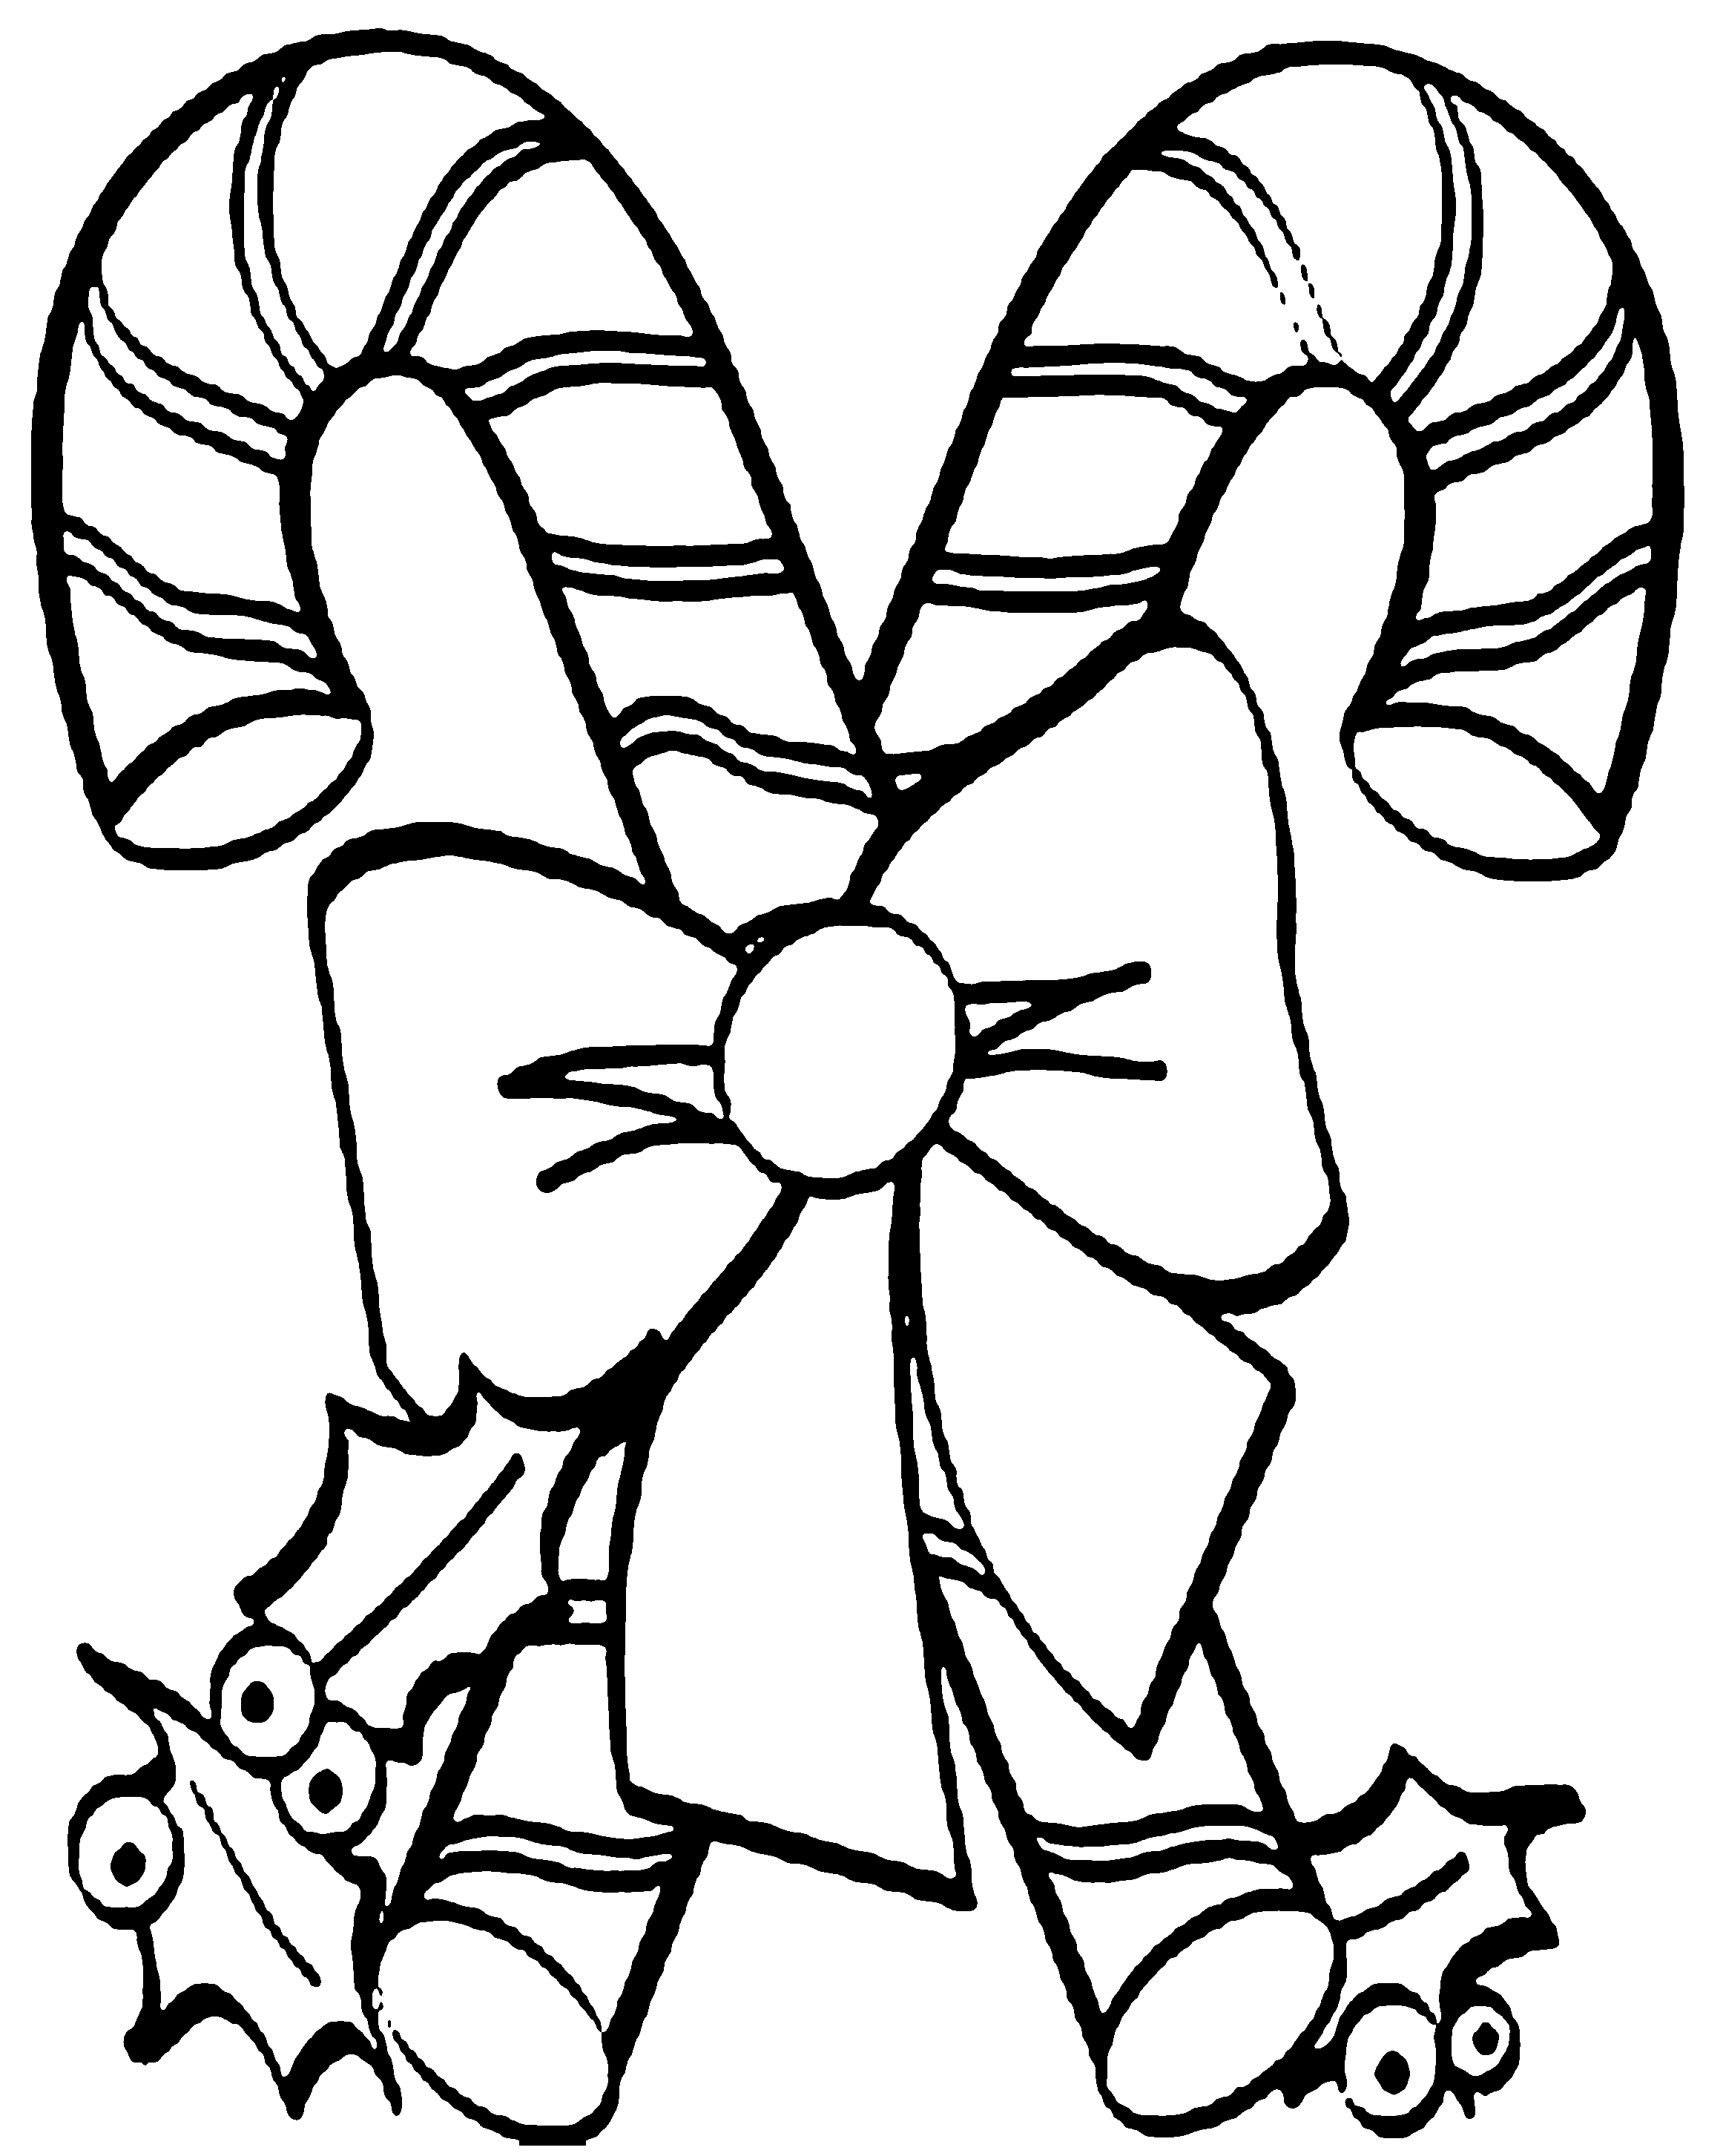 coloring pictures christmas 2020 coloring pages for christmas wallpapers images coloring pictures christmas